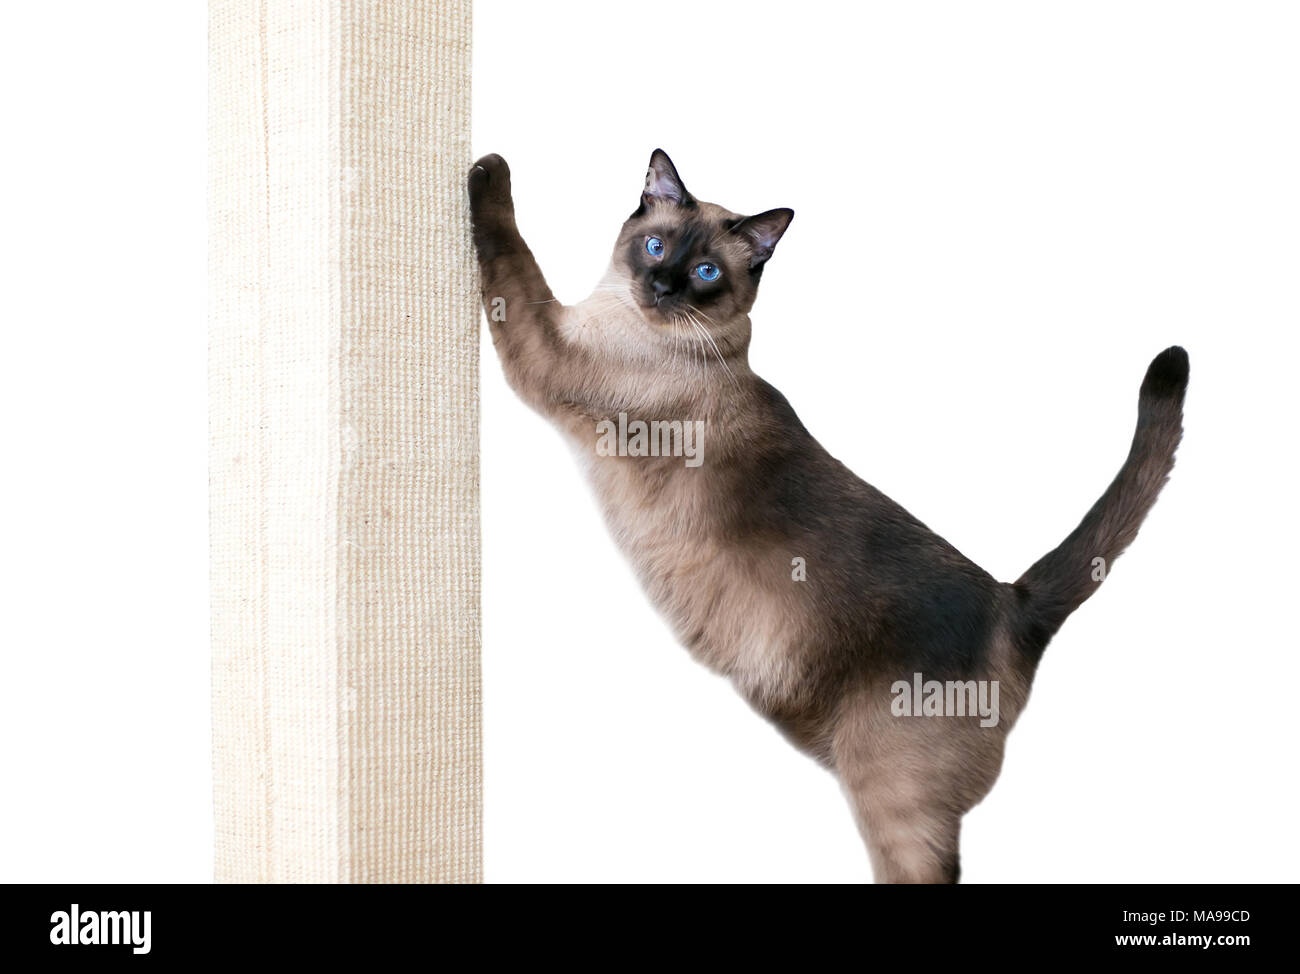 A purebred Siamese cat with seal point markings and blue